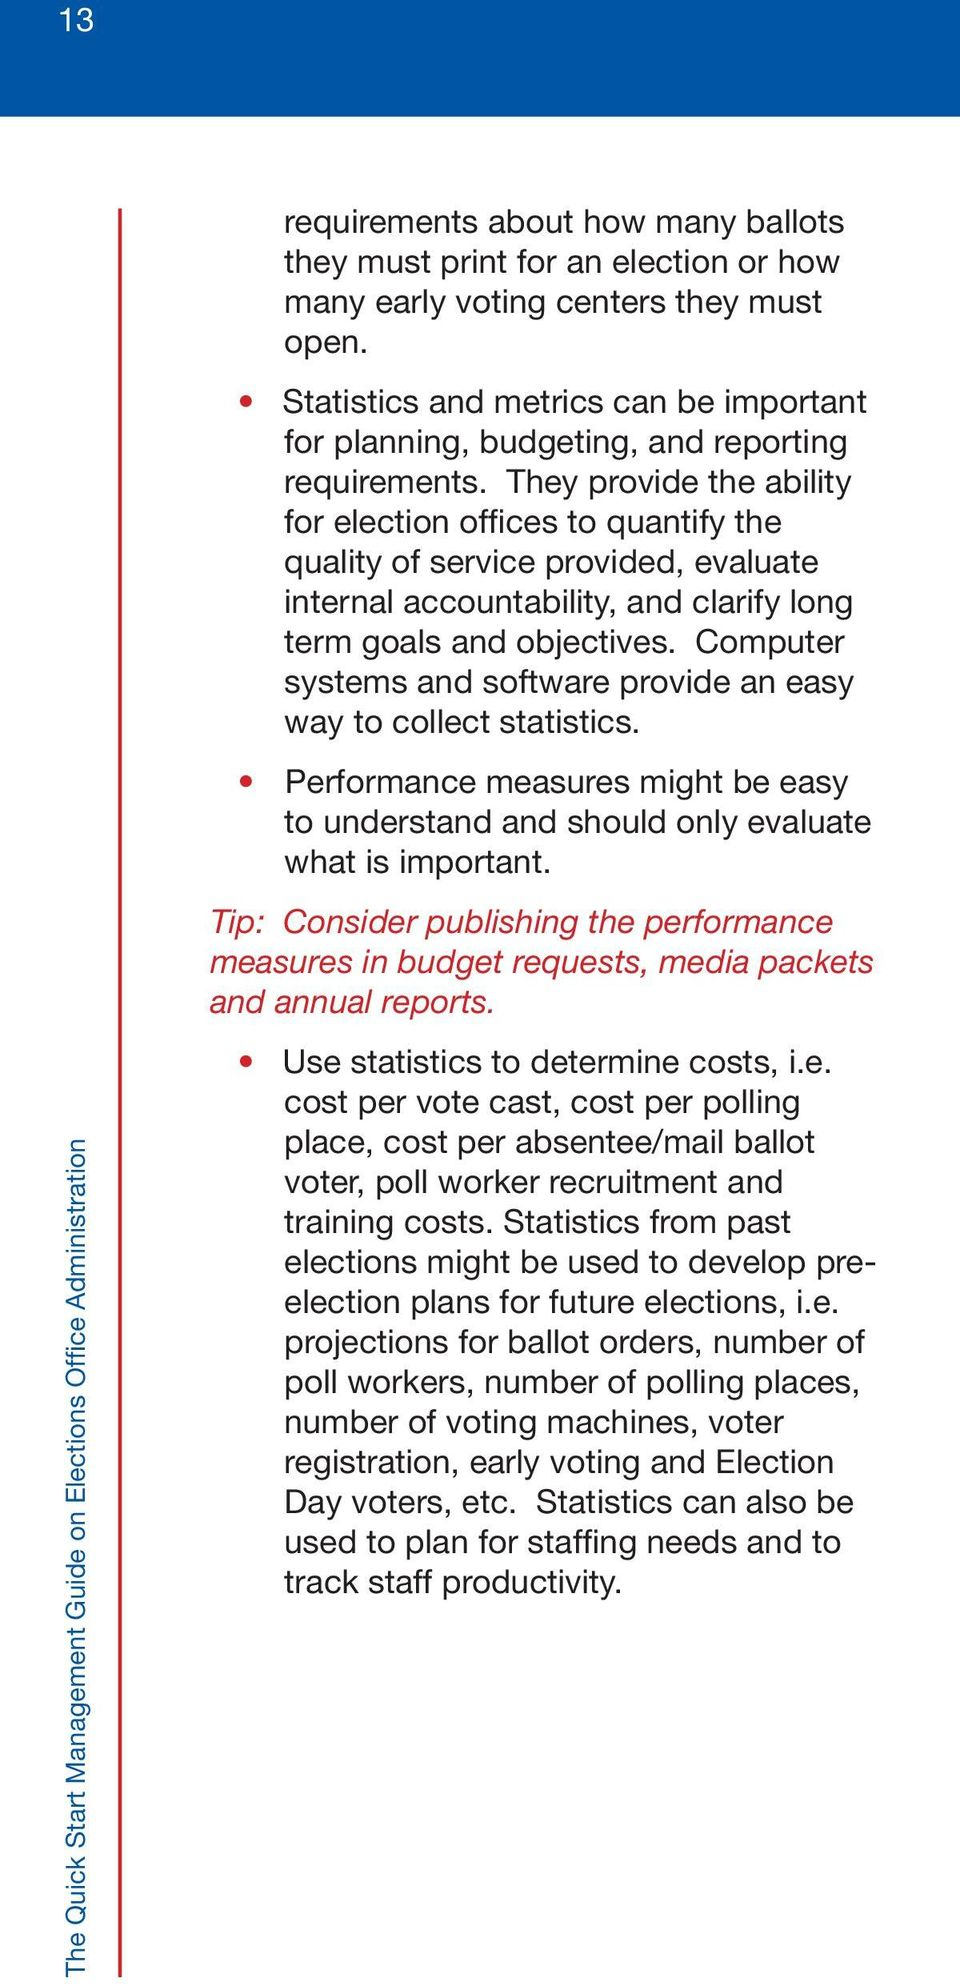 They provide the ability for election offices to quantify the quality of service provided, evaluate internal accountability, and clarify long term goals and objectives.